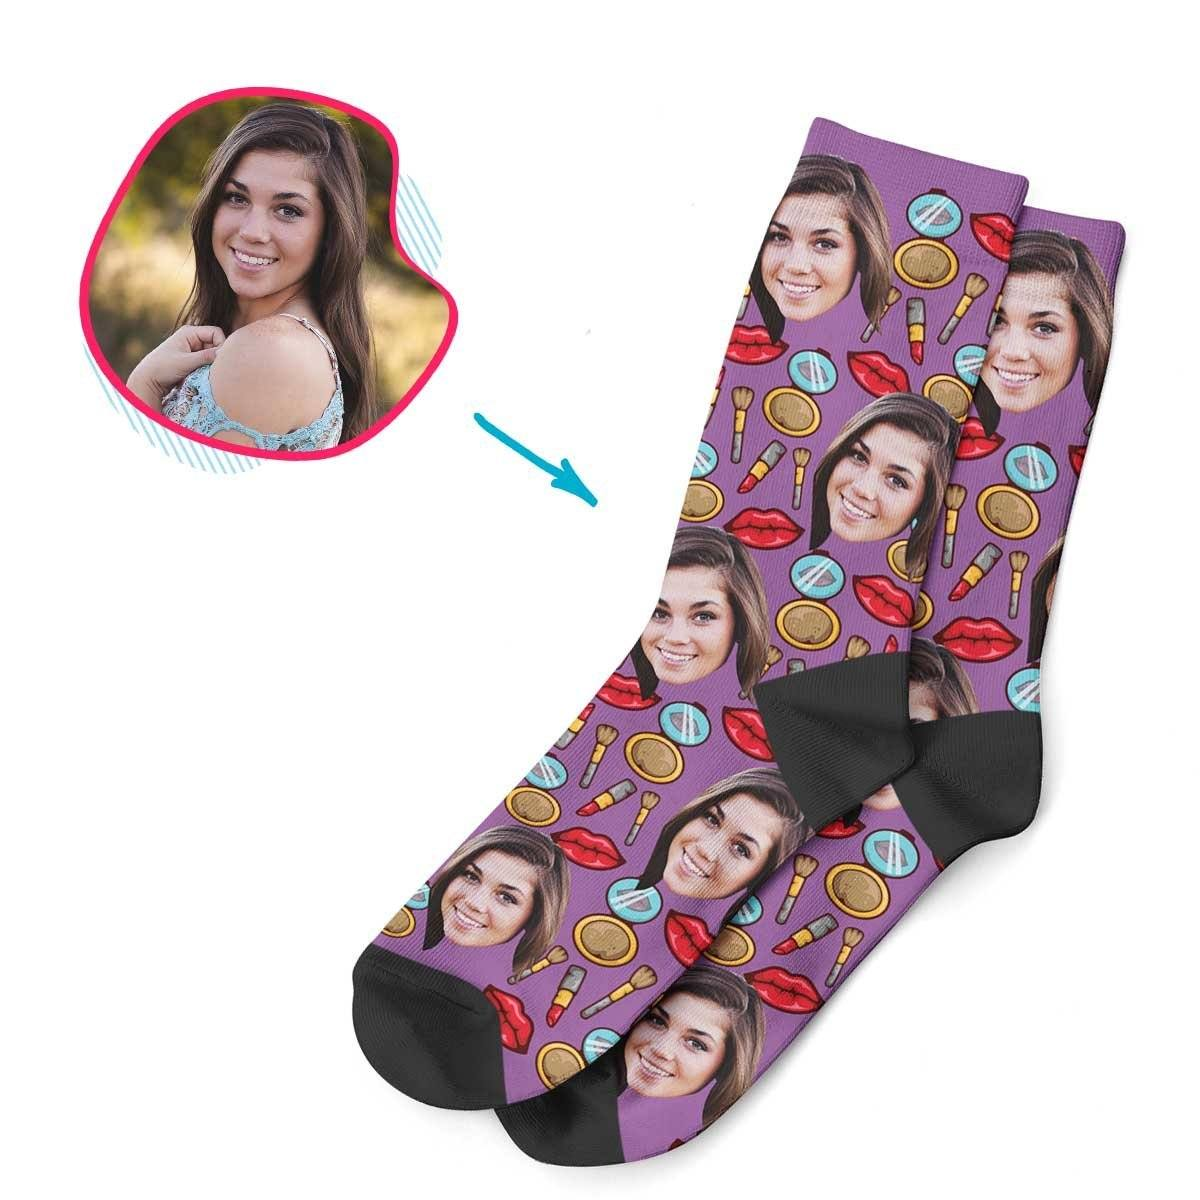 Purple Makeup personalized socks with photo of face printed on them